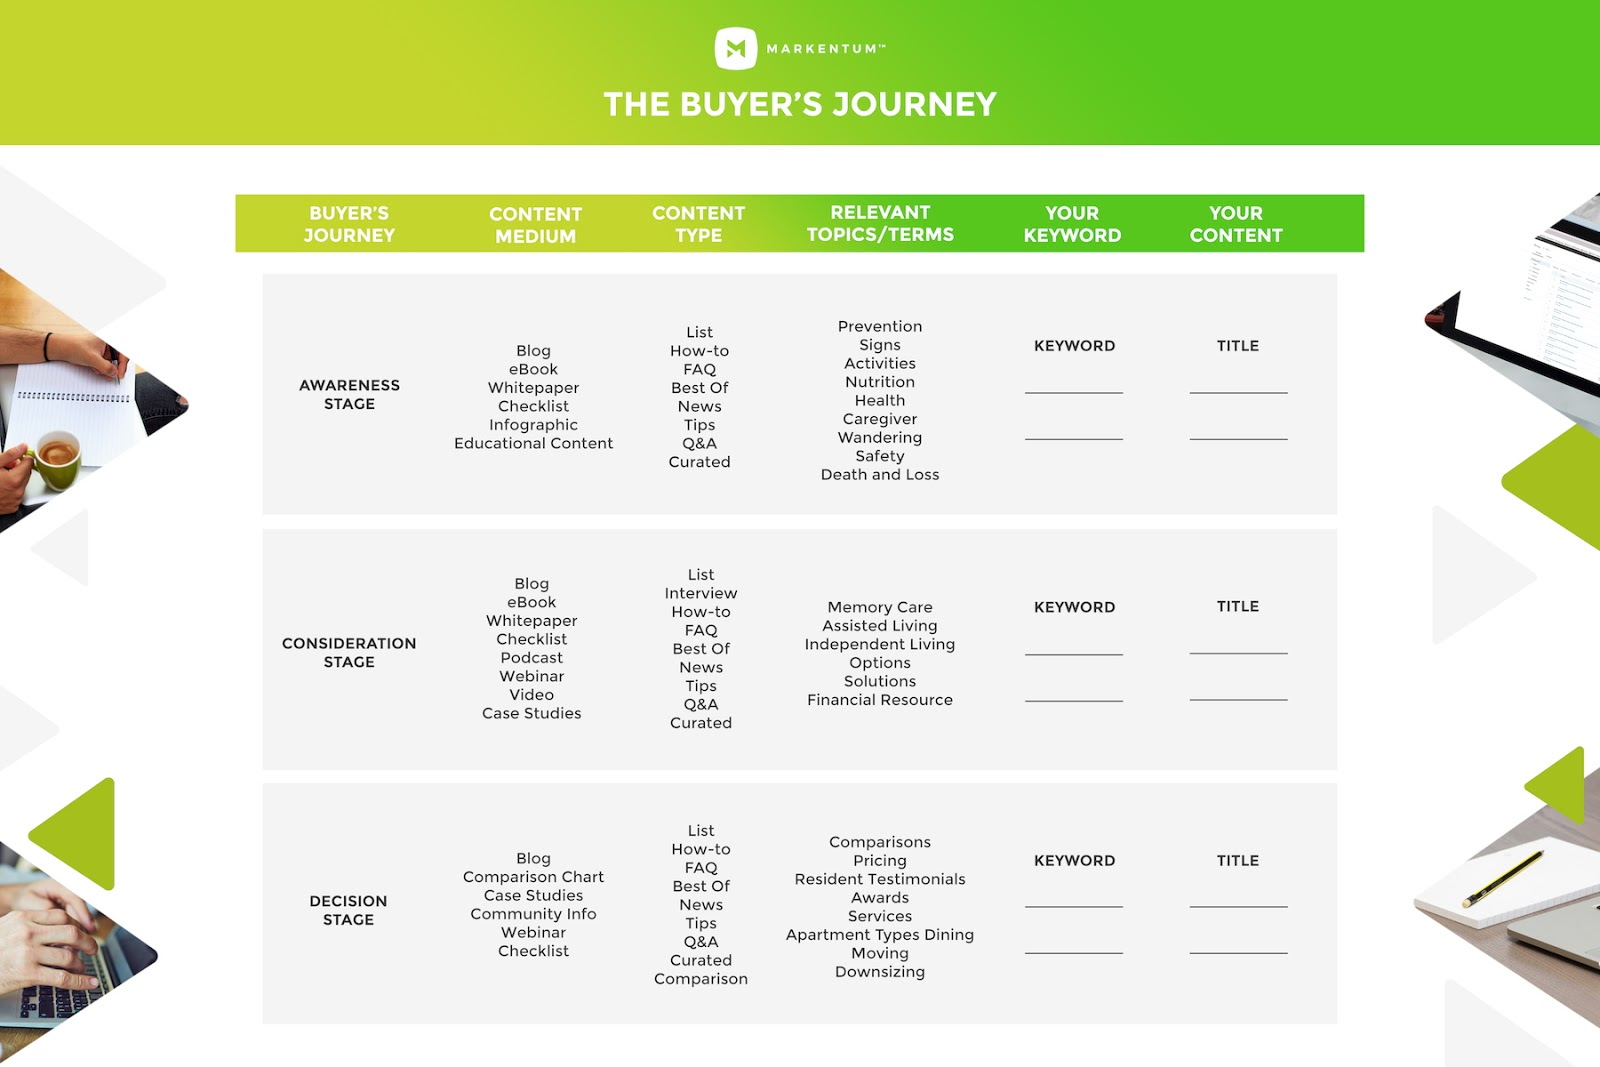 Buyer's Journey_Markentum